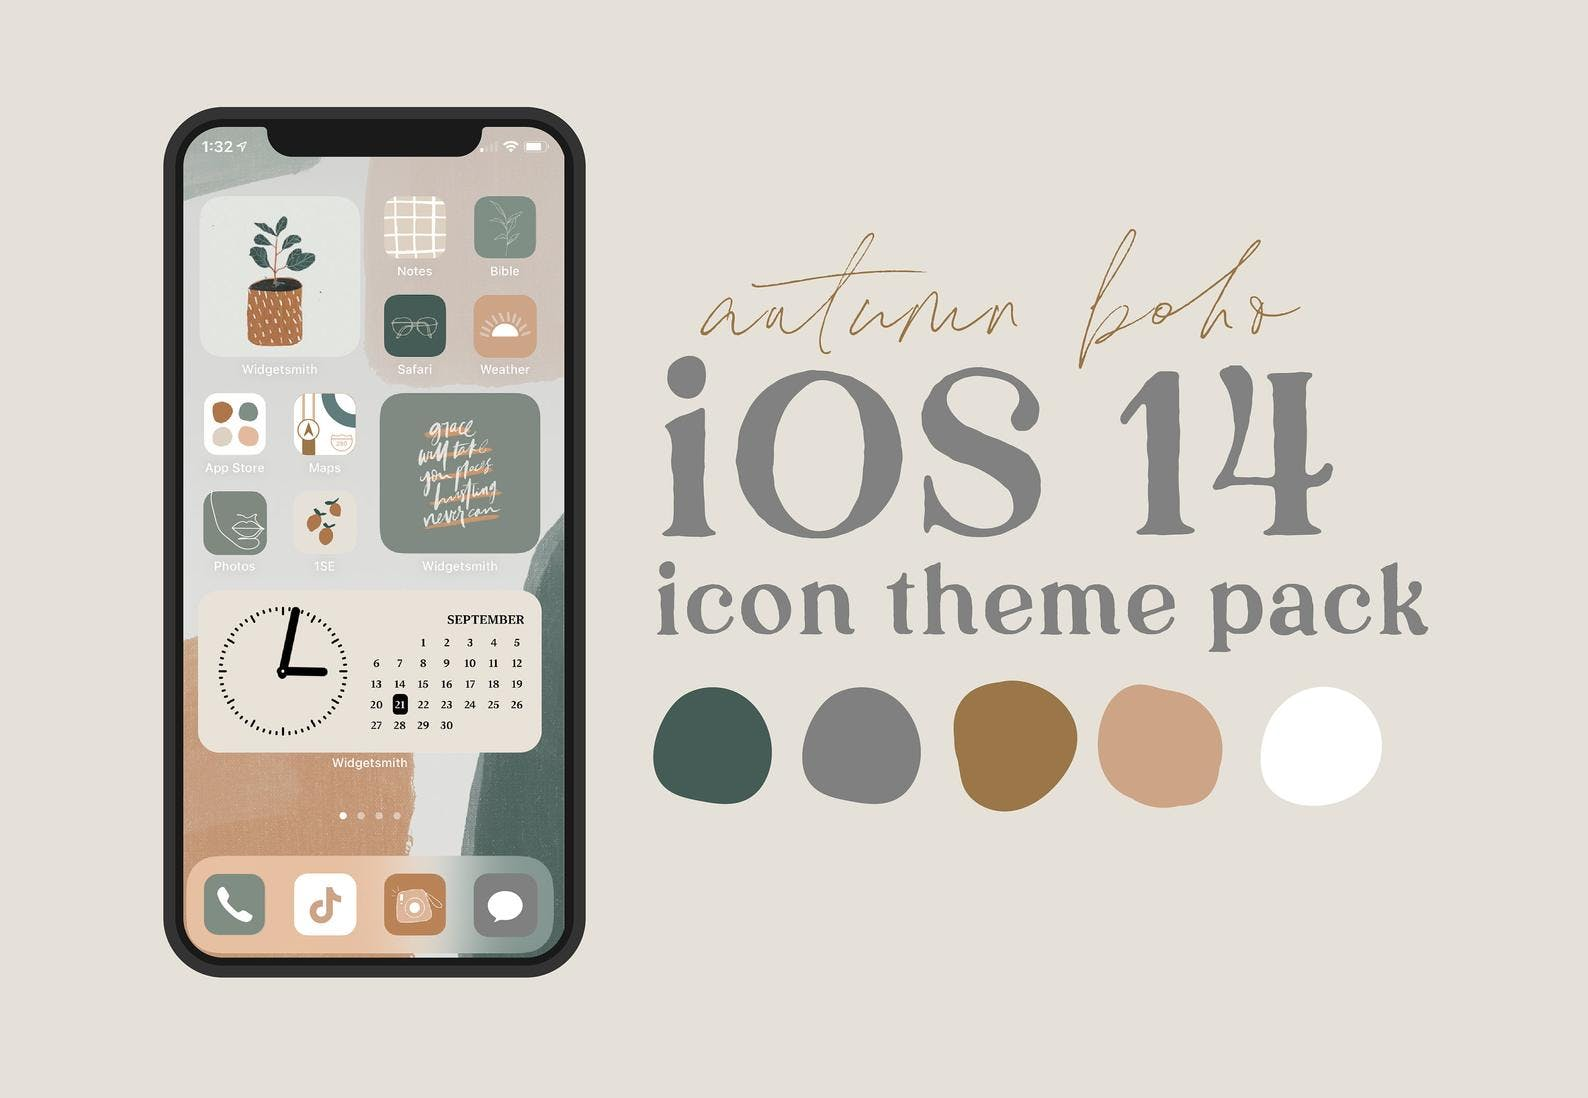 12 Best Ios 14 App Icon Packs On Etsy To Makeover Your Home Screen